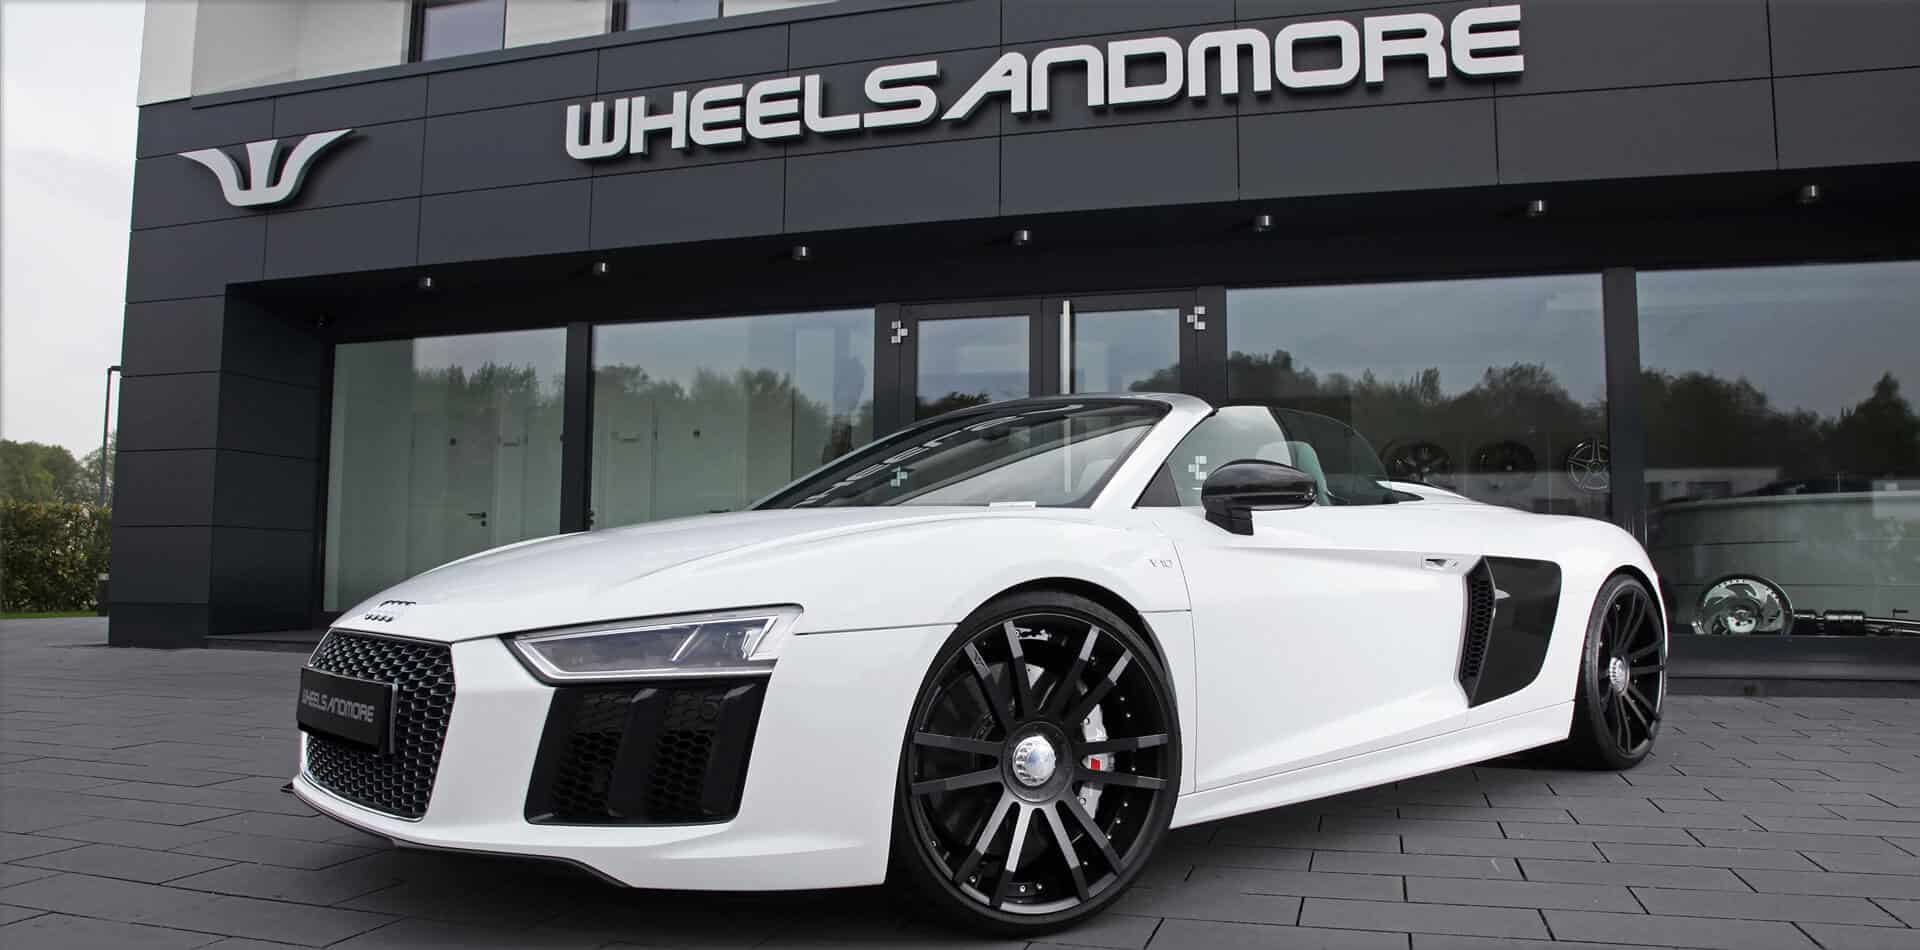 audi r8 tuning wheels exhaust and power upgrades. Black Bedroom Furniture Sets. Home Design Ideas